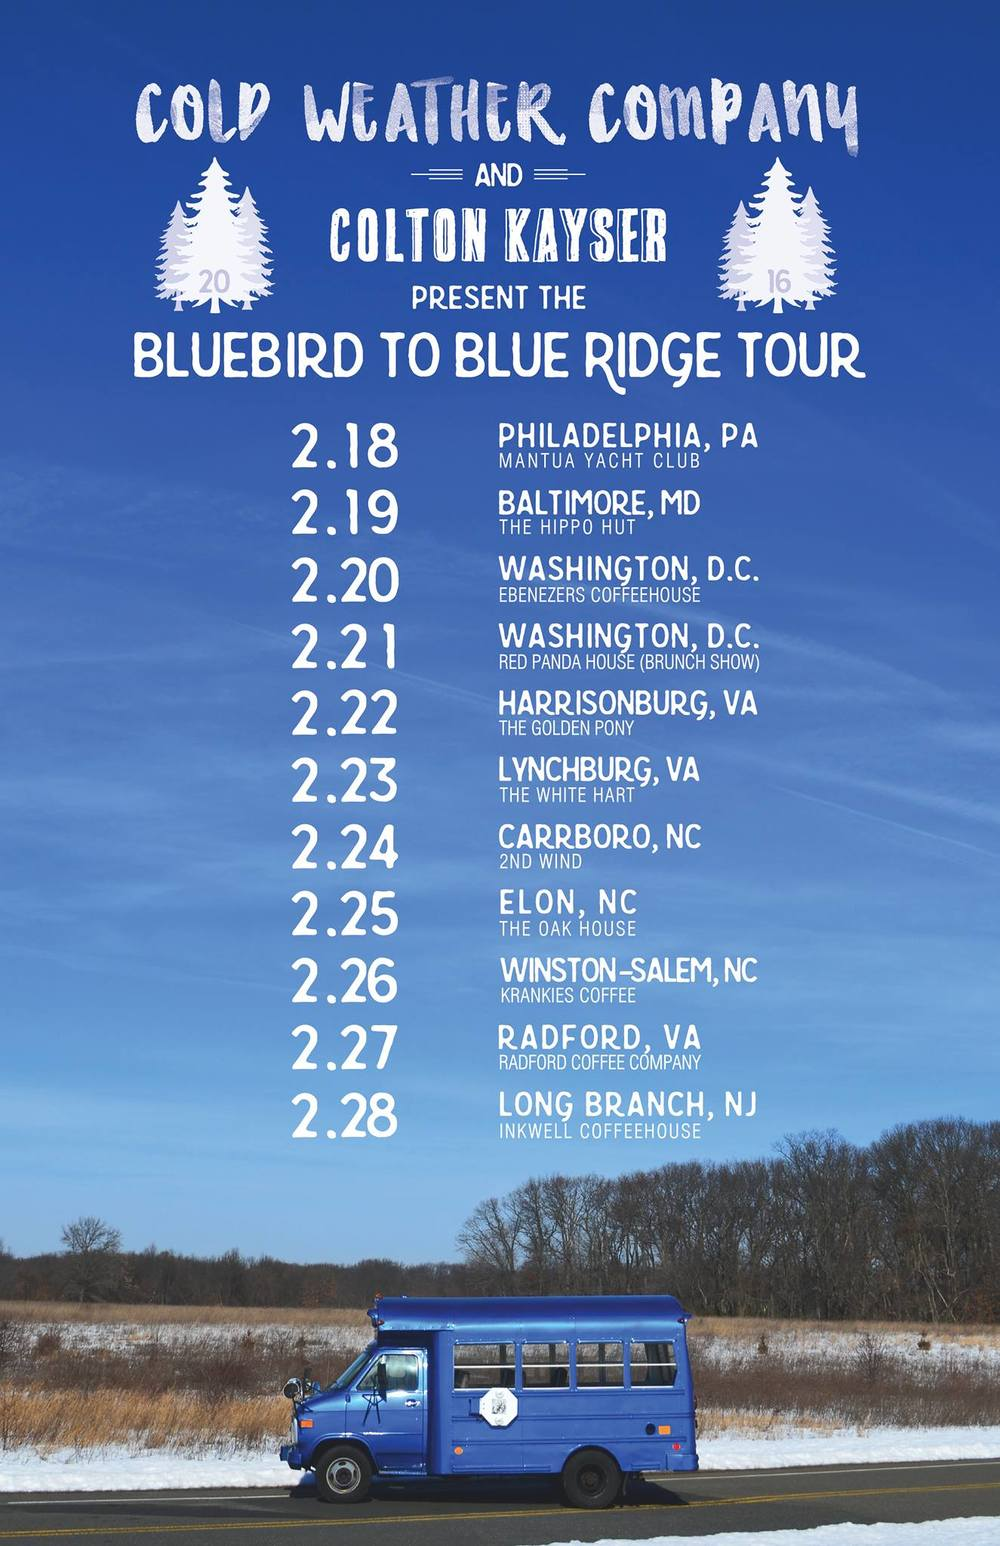 2.18.16 - We took Bluebird on its biggest test yet,  the 'Bluebird to Blue Ridge Tour' - and made it back in one piece!